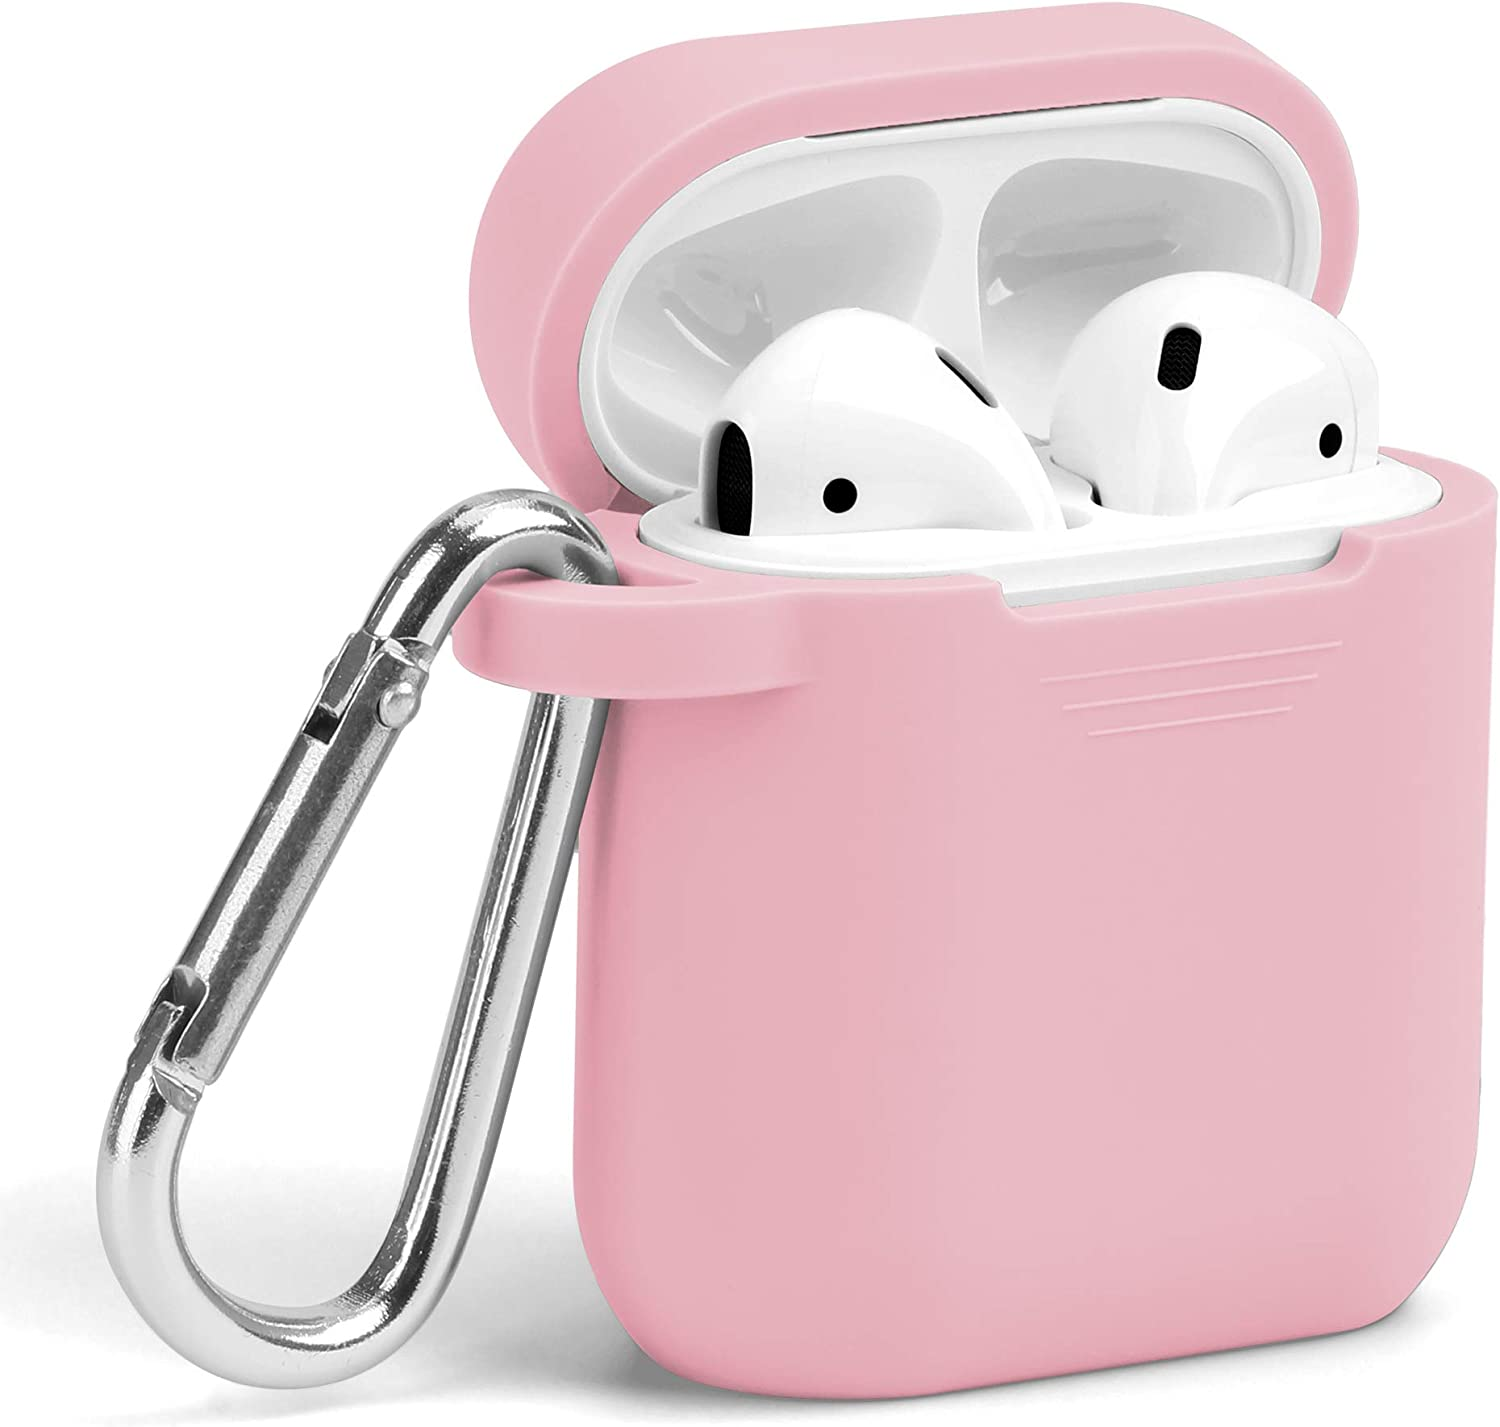 AirPods Case, GMYLE Silicone Protective Shockproof Wireless Charging Airpods Earbuds Case Cover Skin with Keychain Set Compatible for Apple AirPods 2 & 1 – Baby Pink